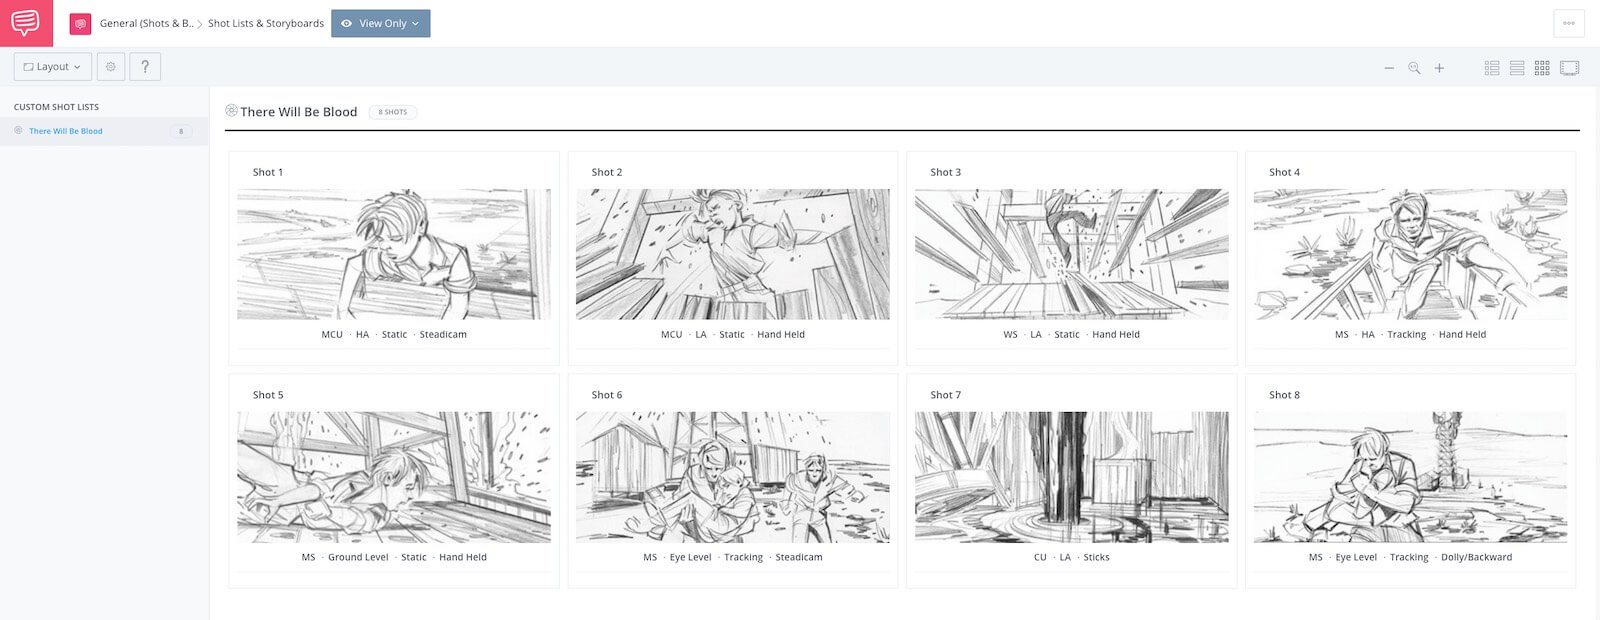 Storyboard Examples - Movie Storyboard - There Will be Blood - StudioBinder